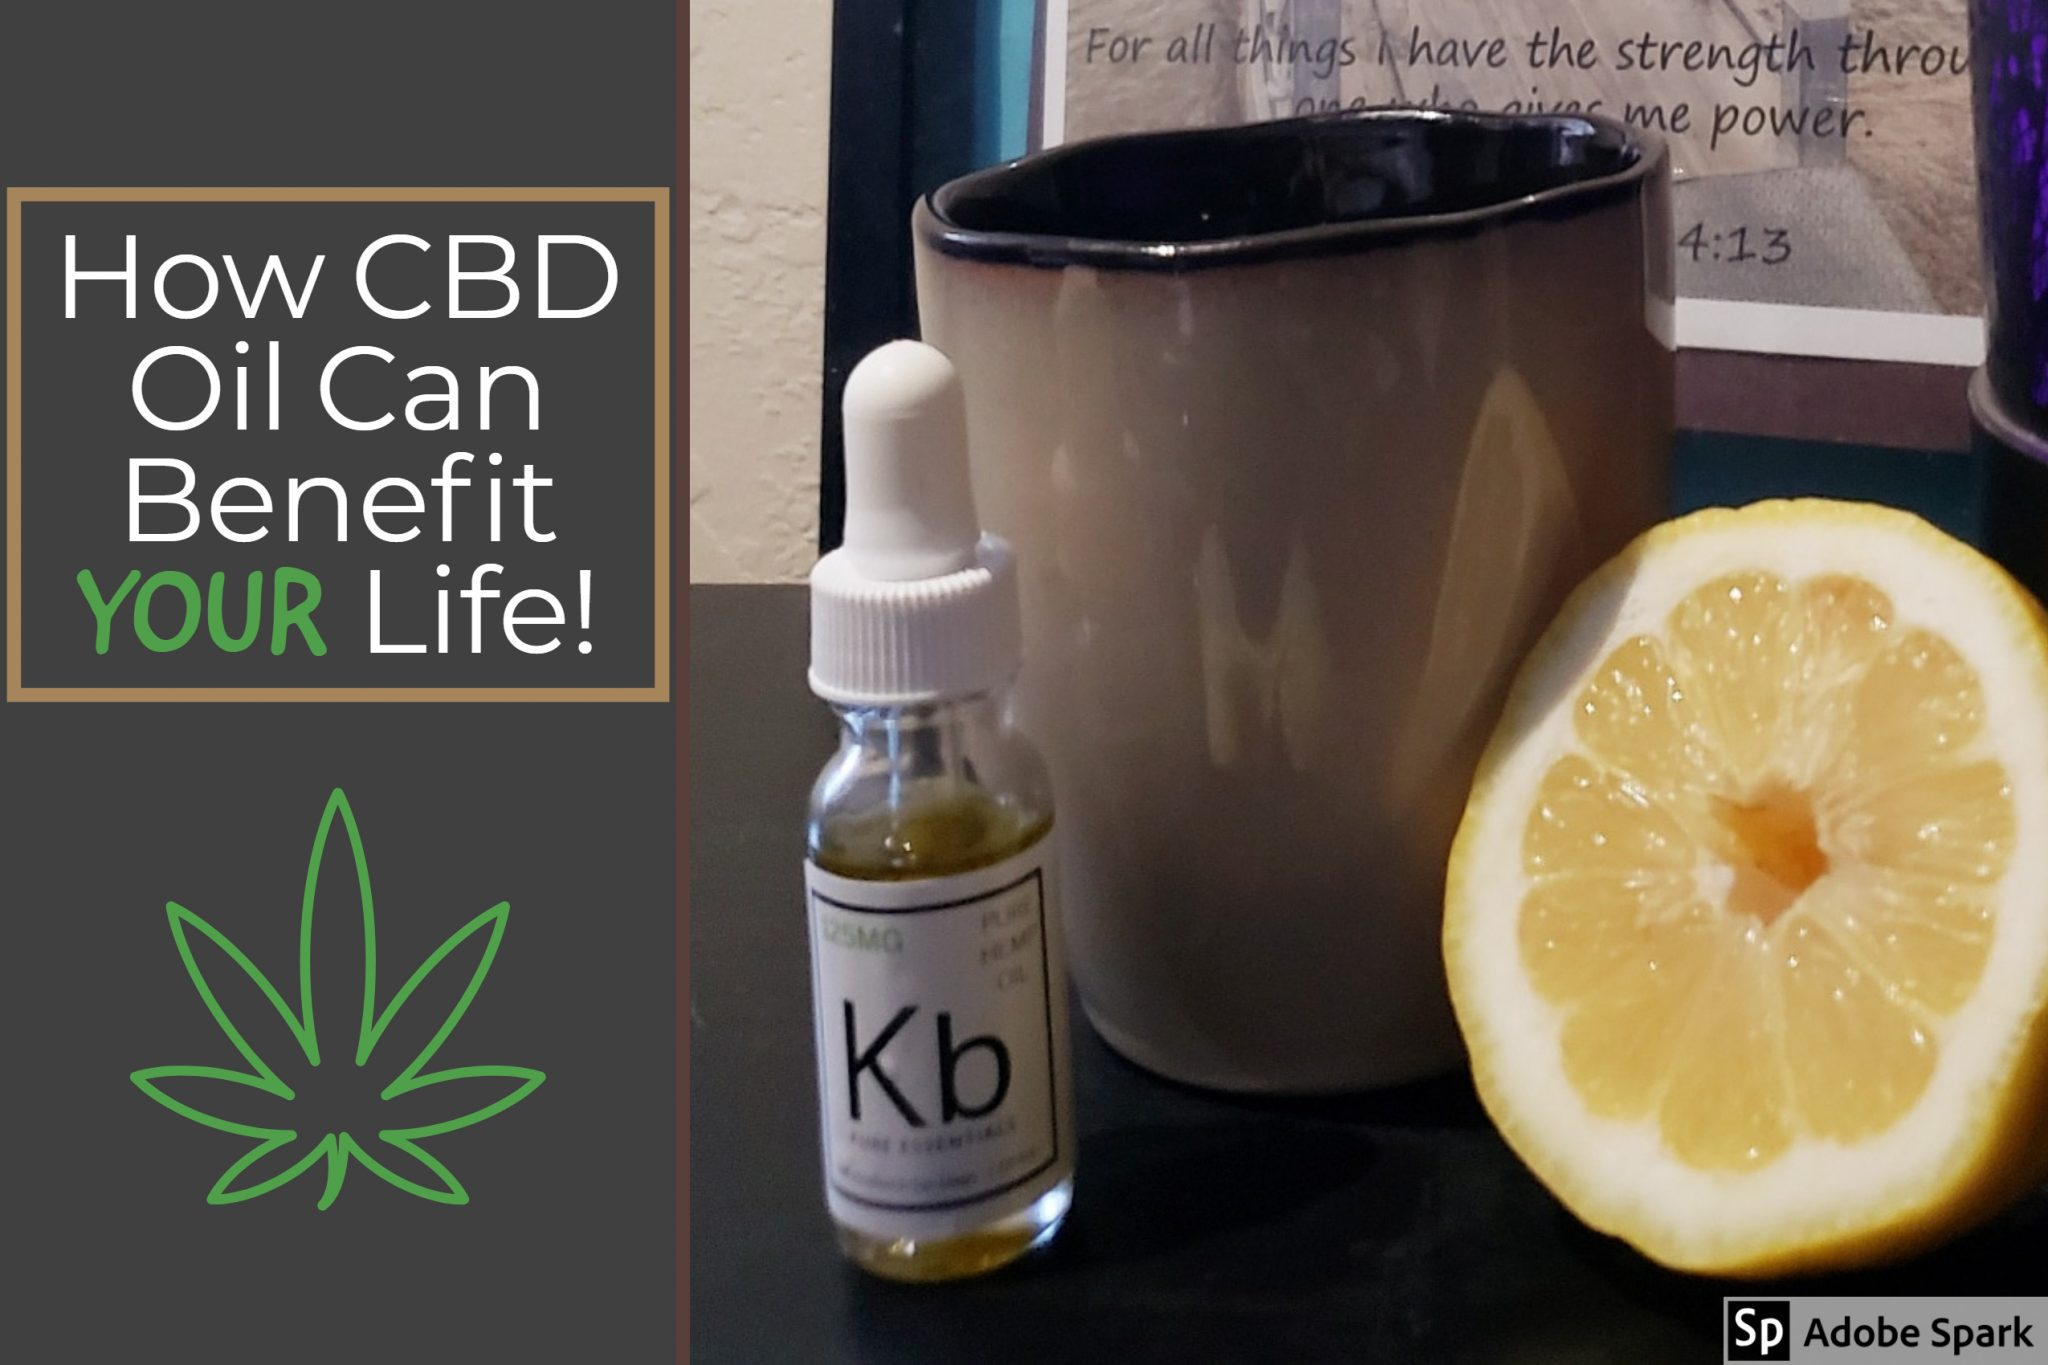 How CBD Oil Can Benefit YOUR Life